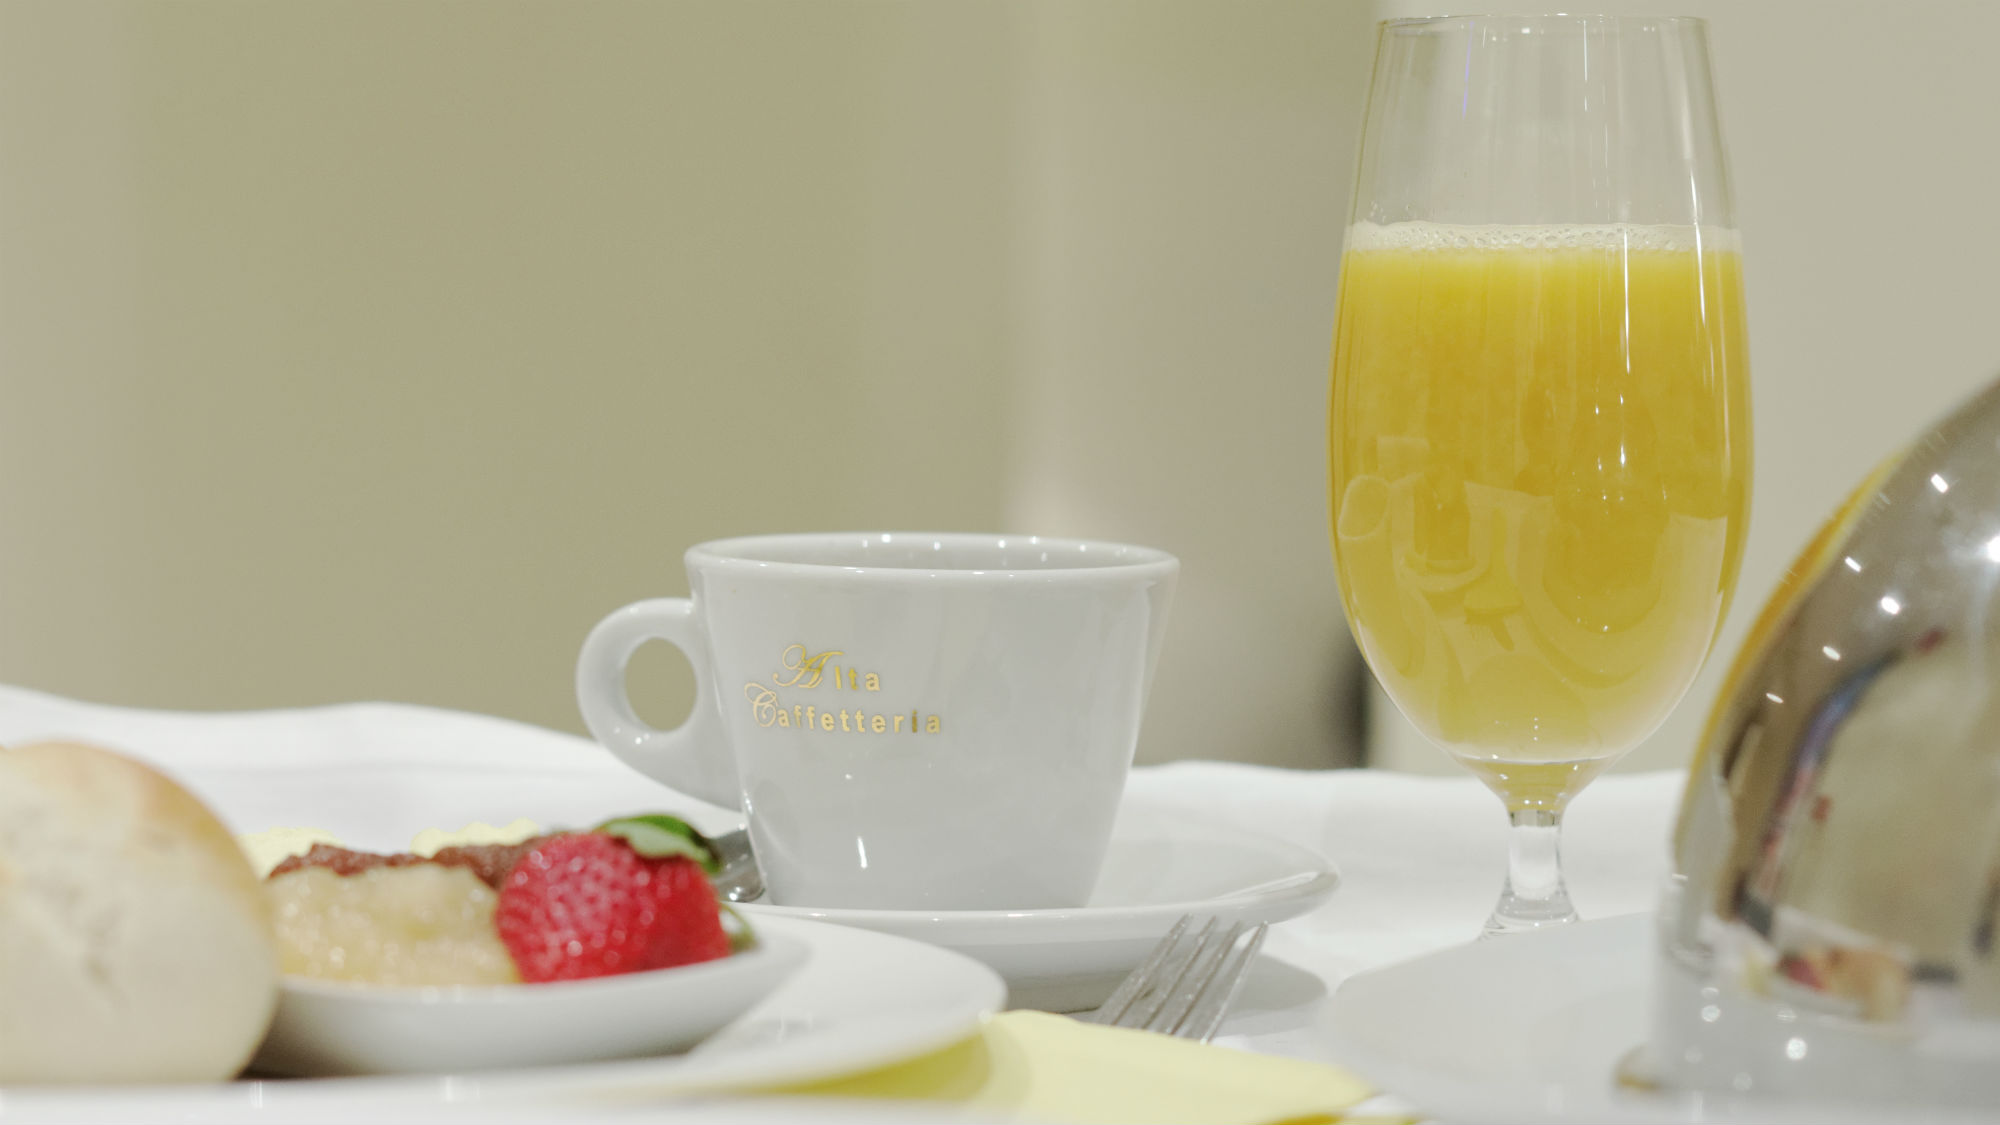 My_City_Hotel_in_Tallinn_restaurant_healthy_breakfast